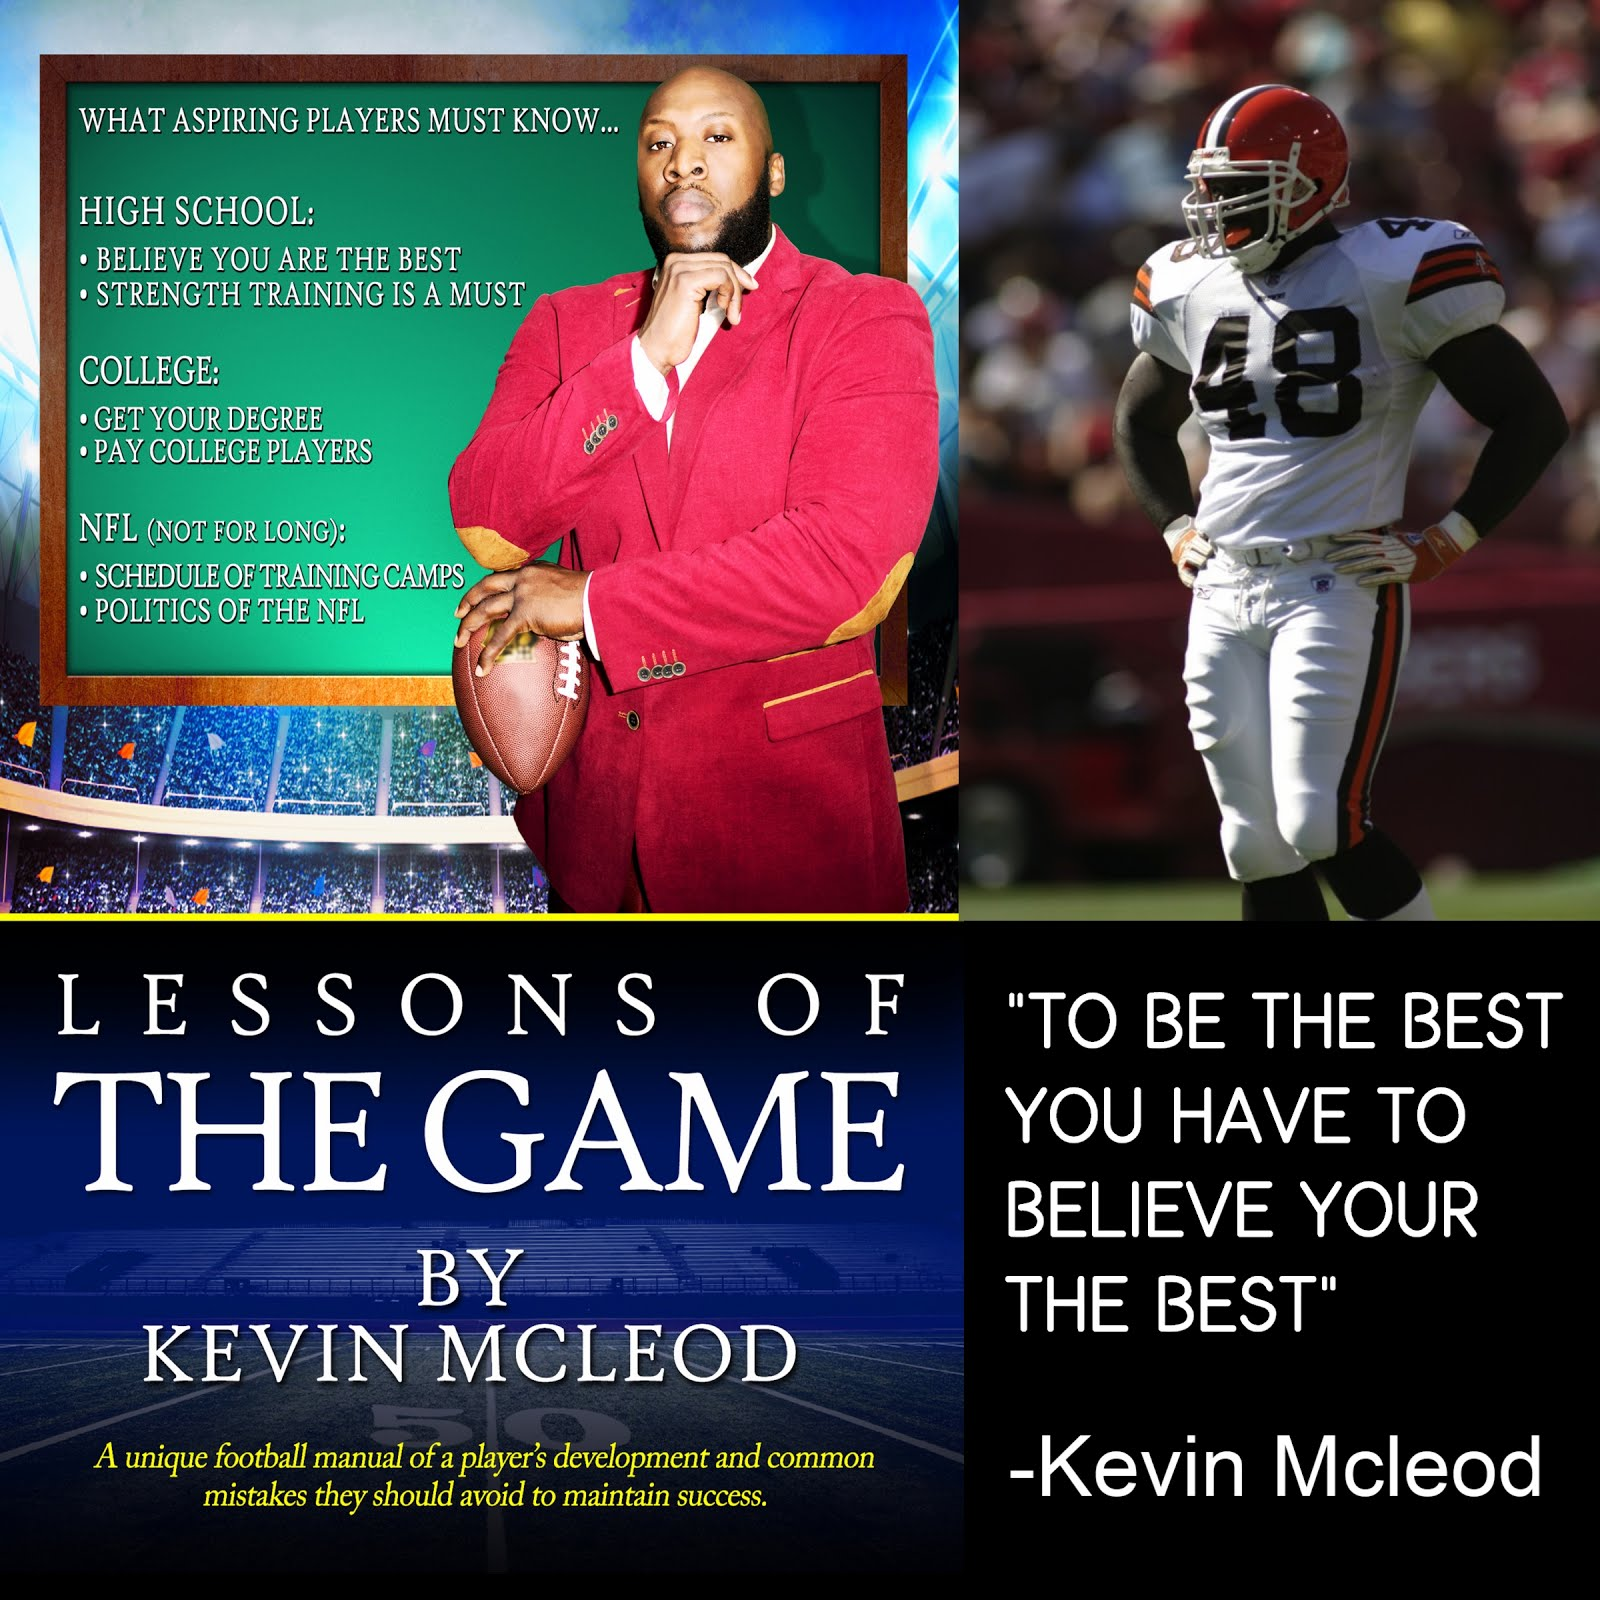 Lessons of the Game by Kevin Mcleod